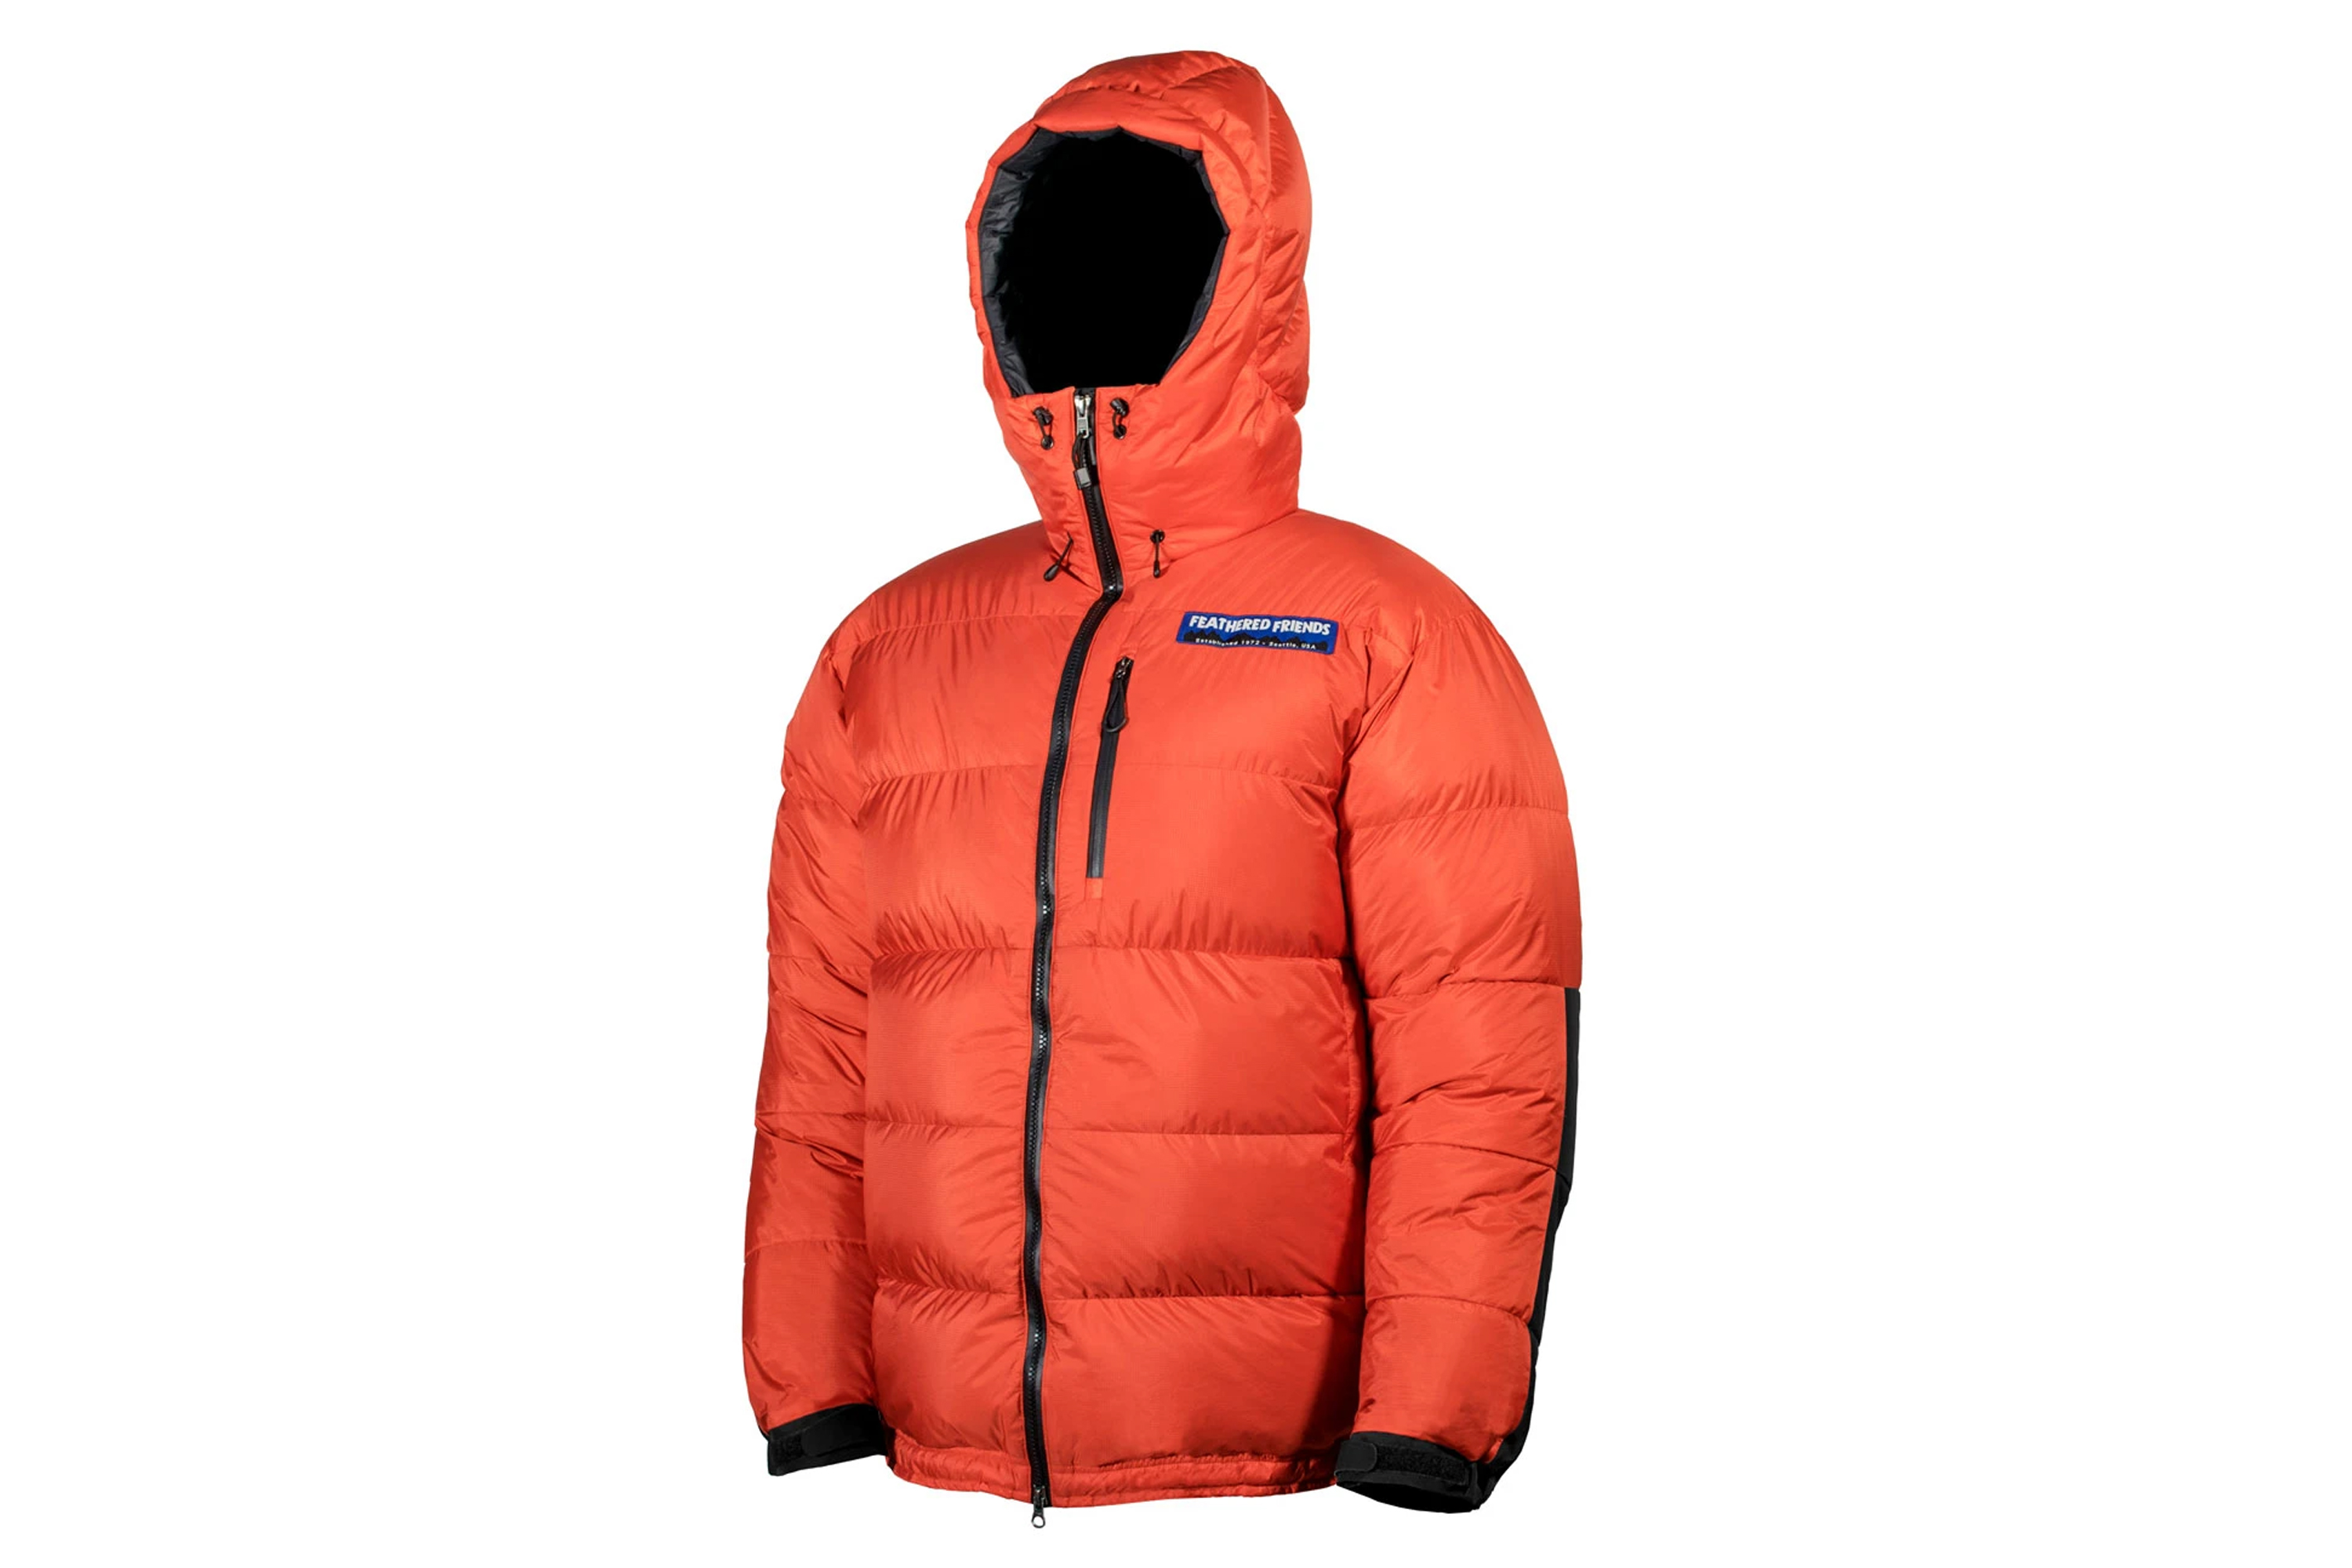 GJ_Best_Winter_parka_Feathered_Friends_Khumbu_Down_Parka